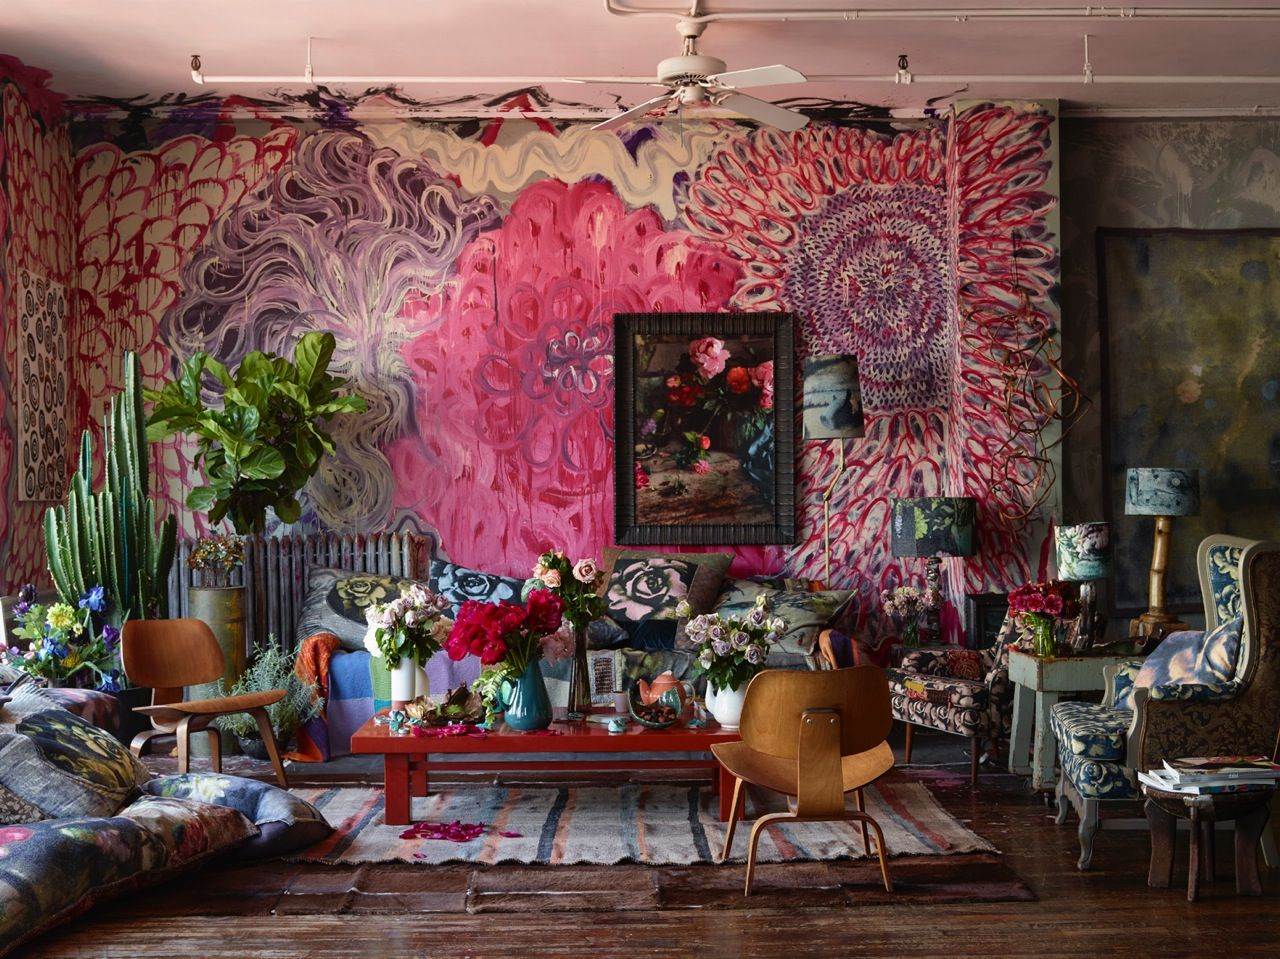 Arredamento Bohemien ~ Maximilism: is that a sofa over there against the muraled wall